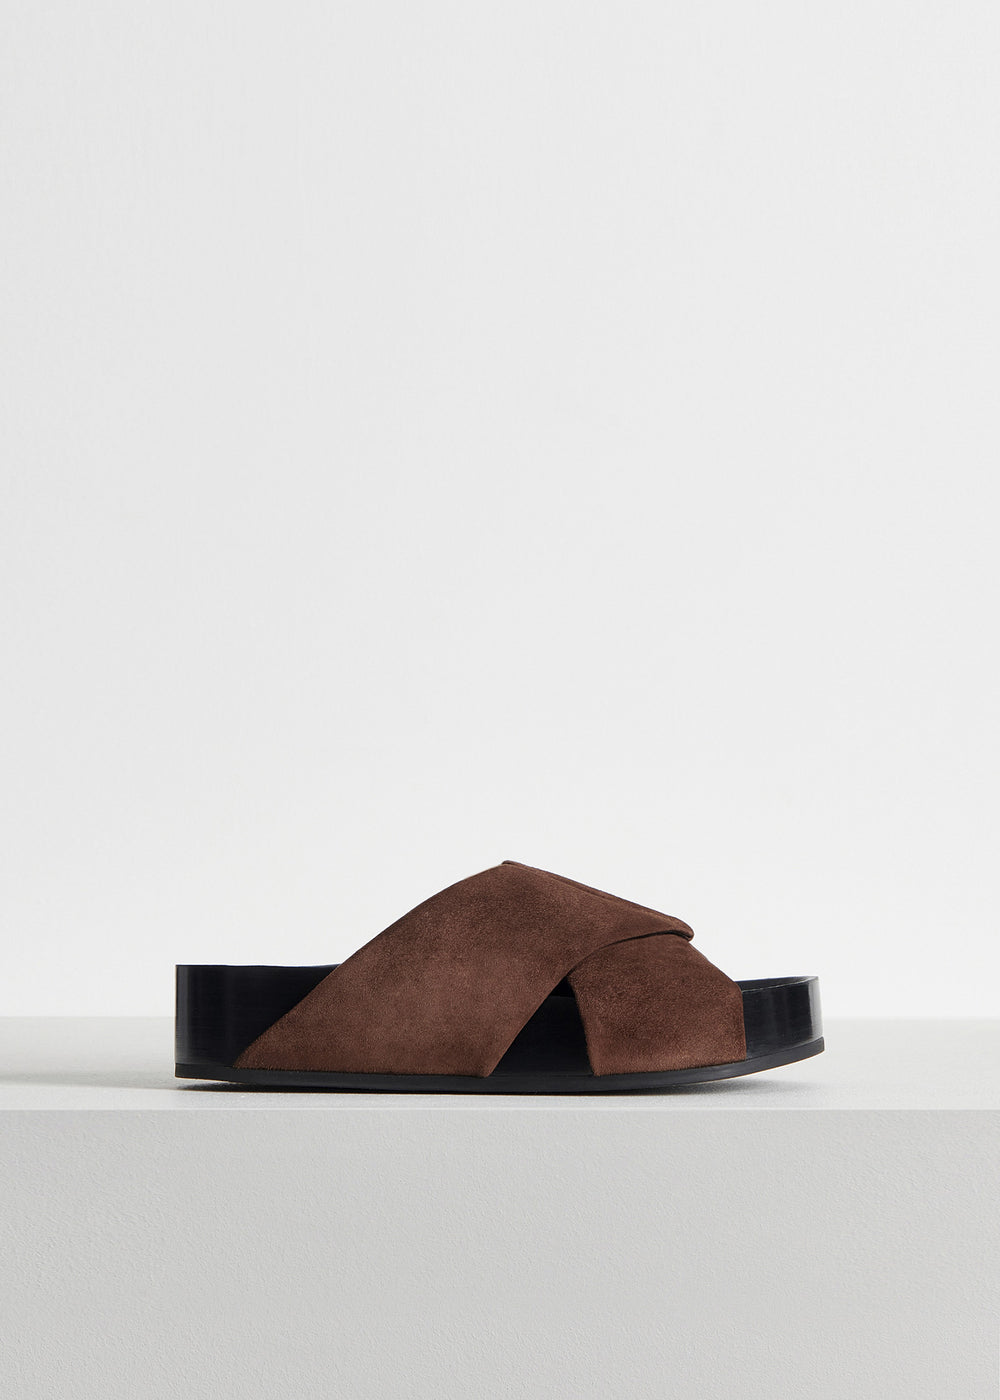 Slide Sandal in Suede - Olive in Dark Brown by Co Collections